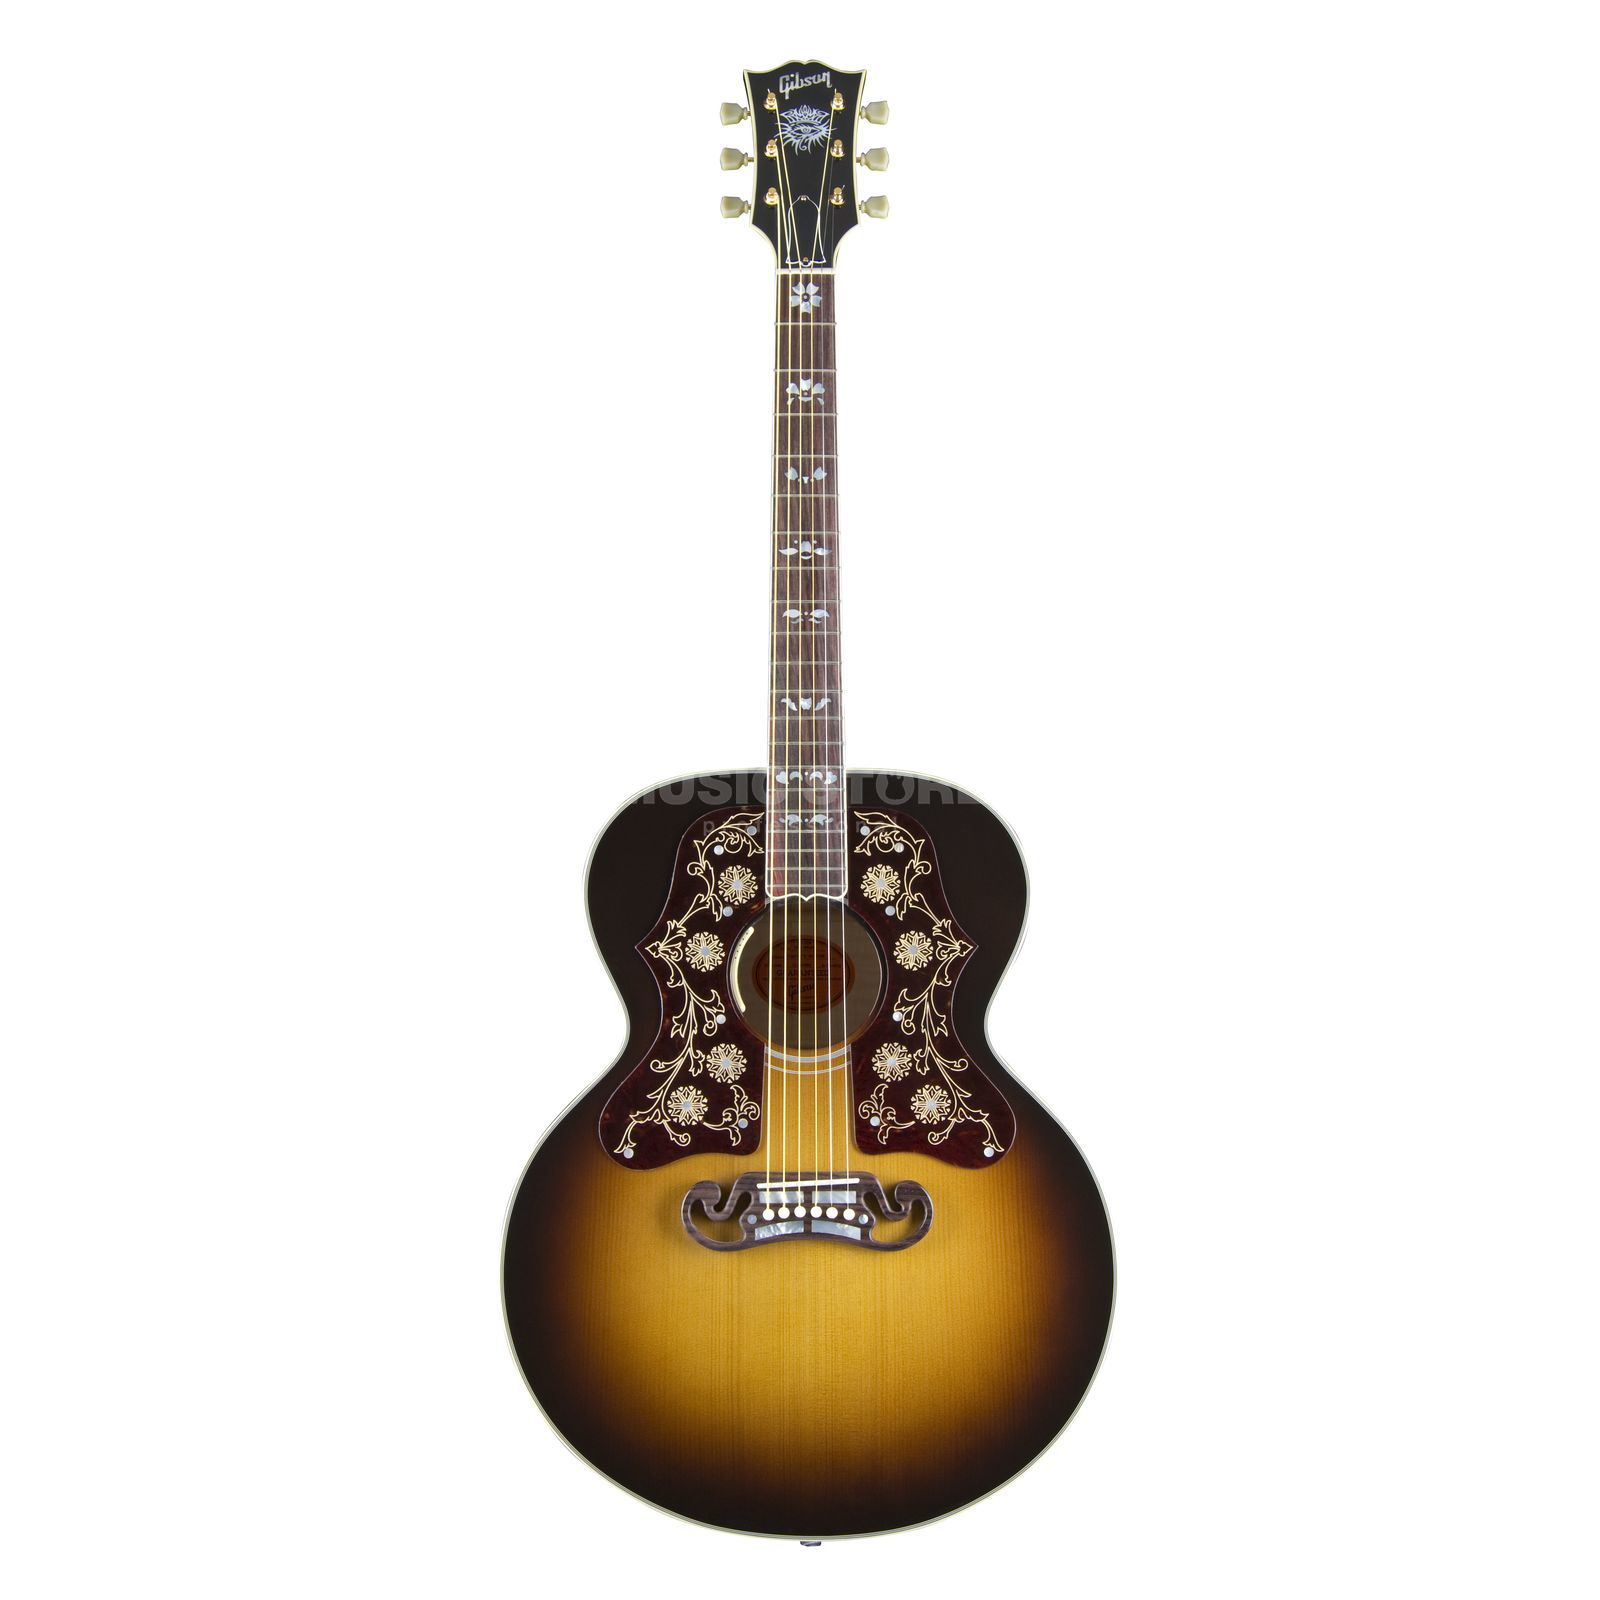 Gibson SJ-200 Bob Dylan VS Vintage Sunburst Player's Edit Produktbillede